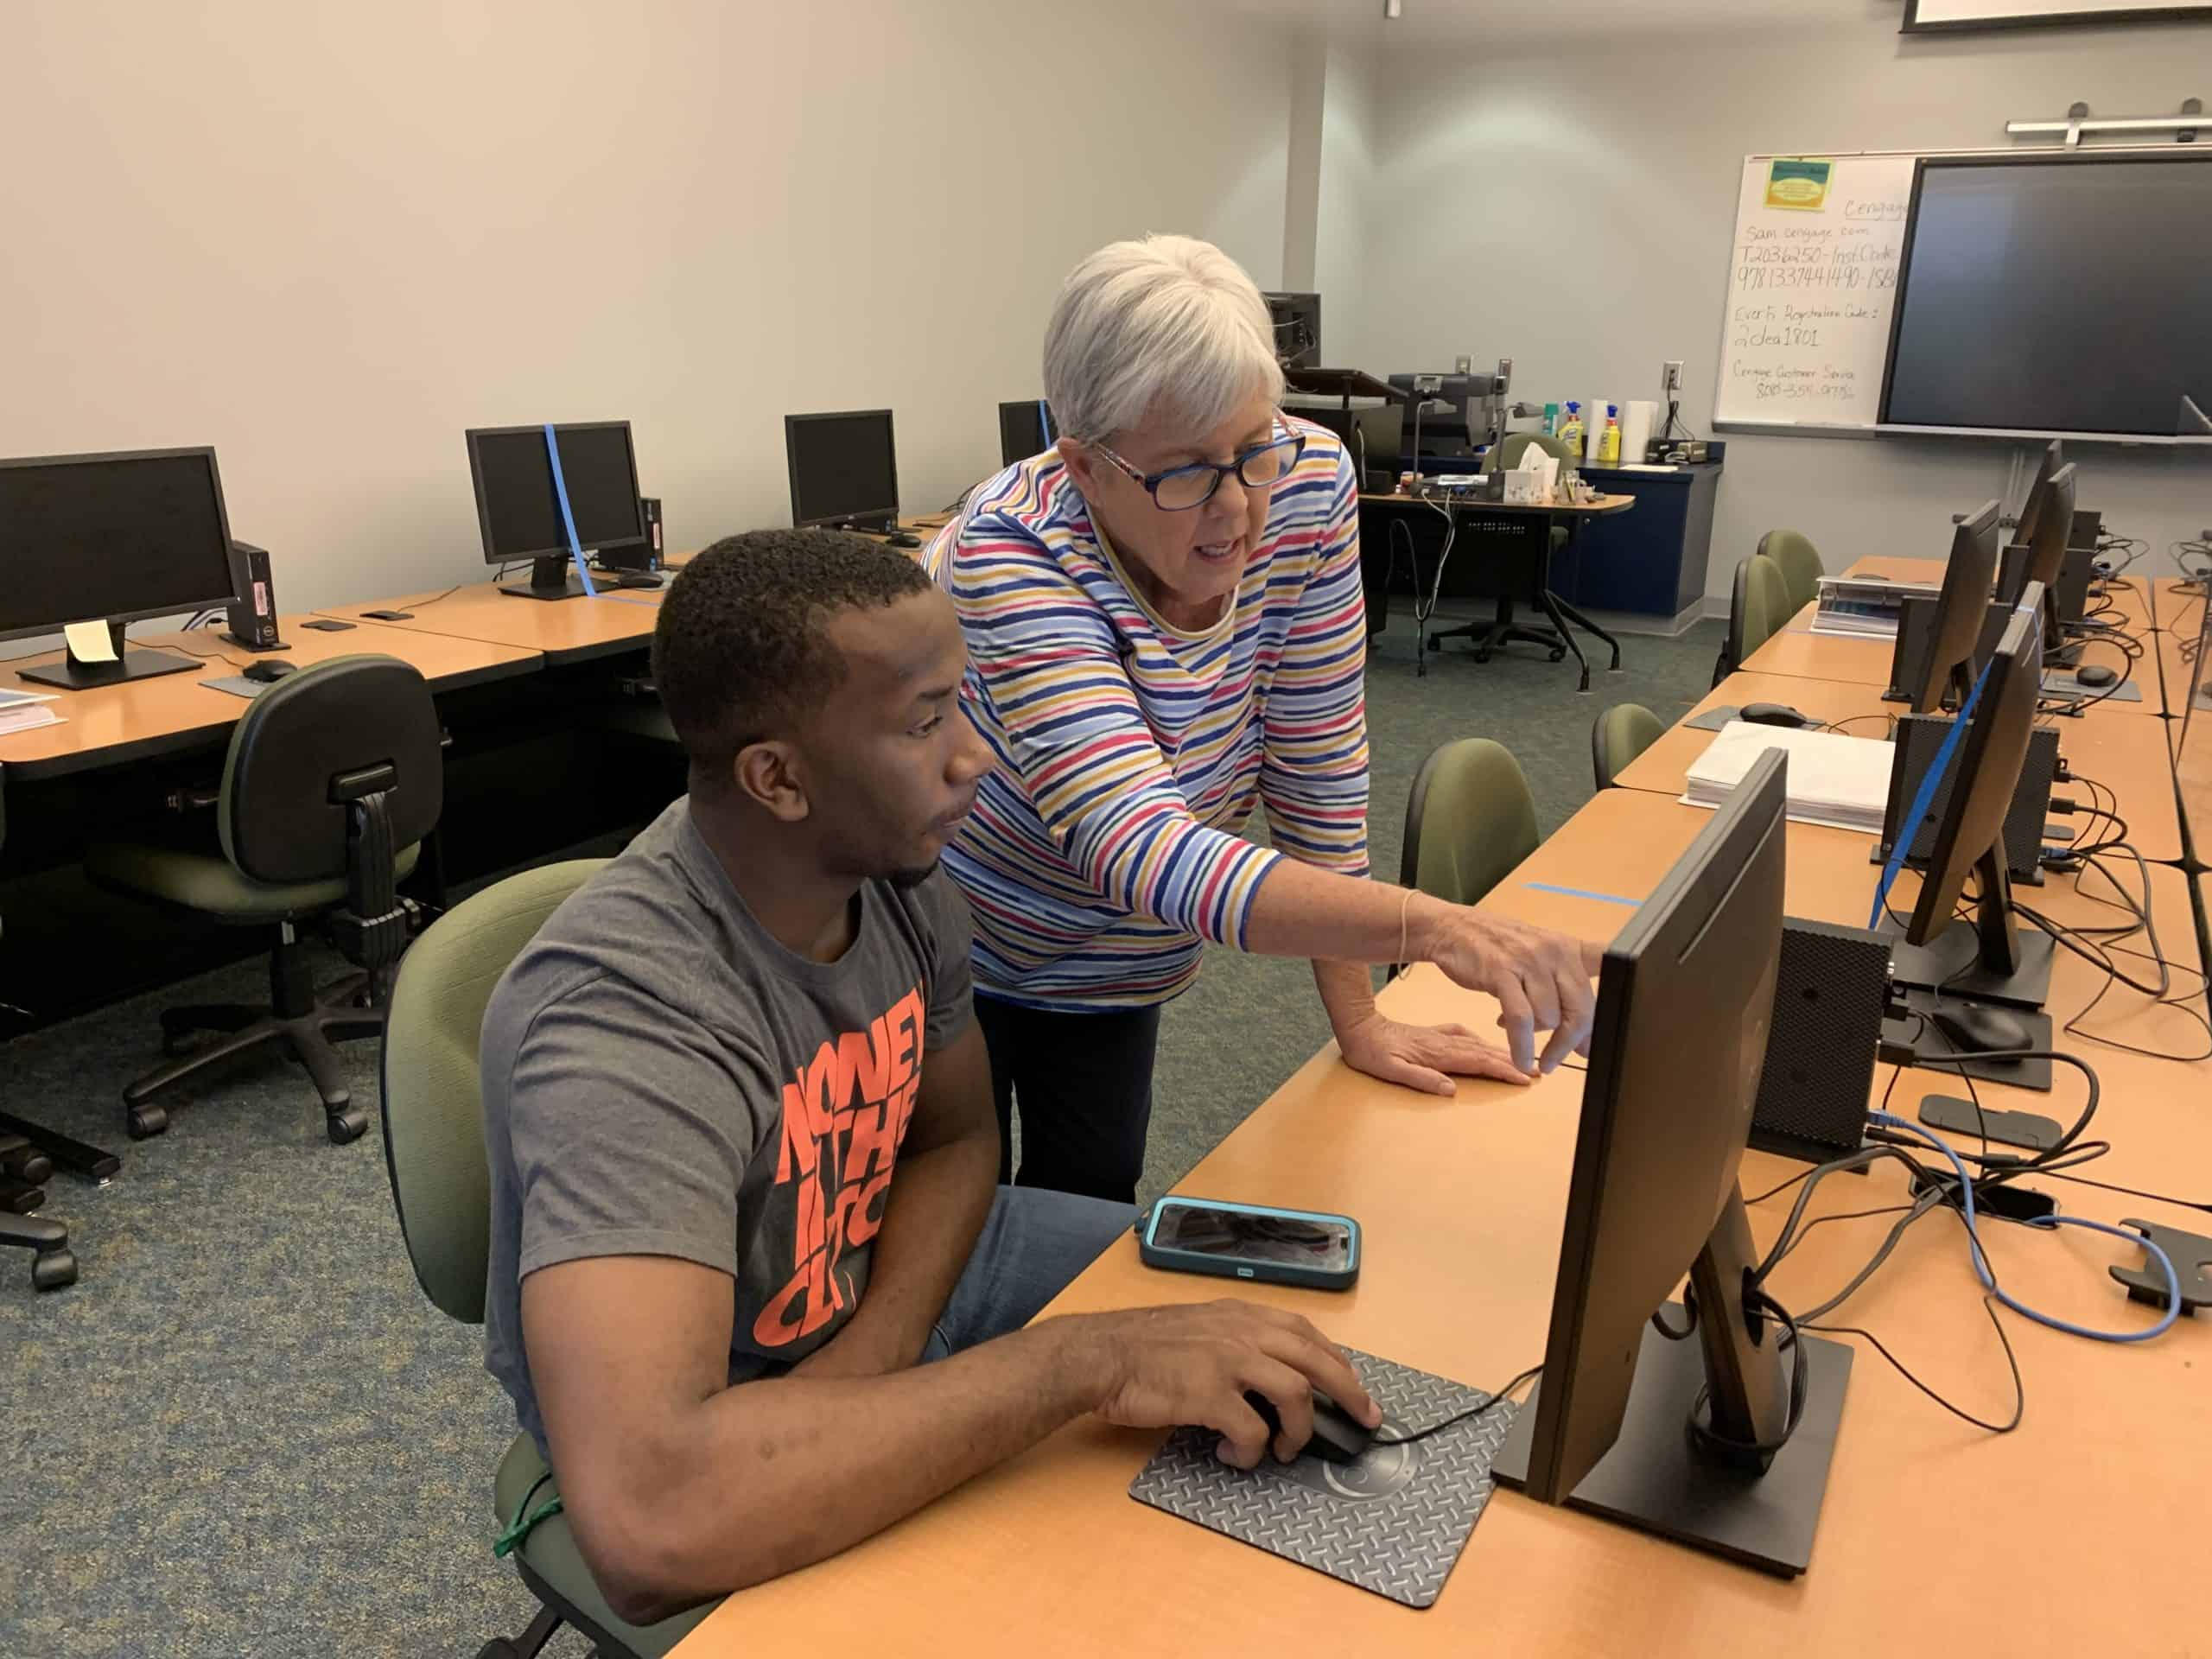 OFTC student in the tutoring lab at a computer receiving some instruction